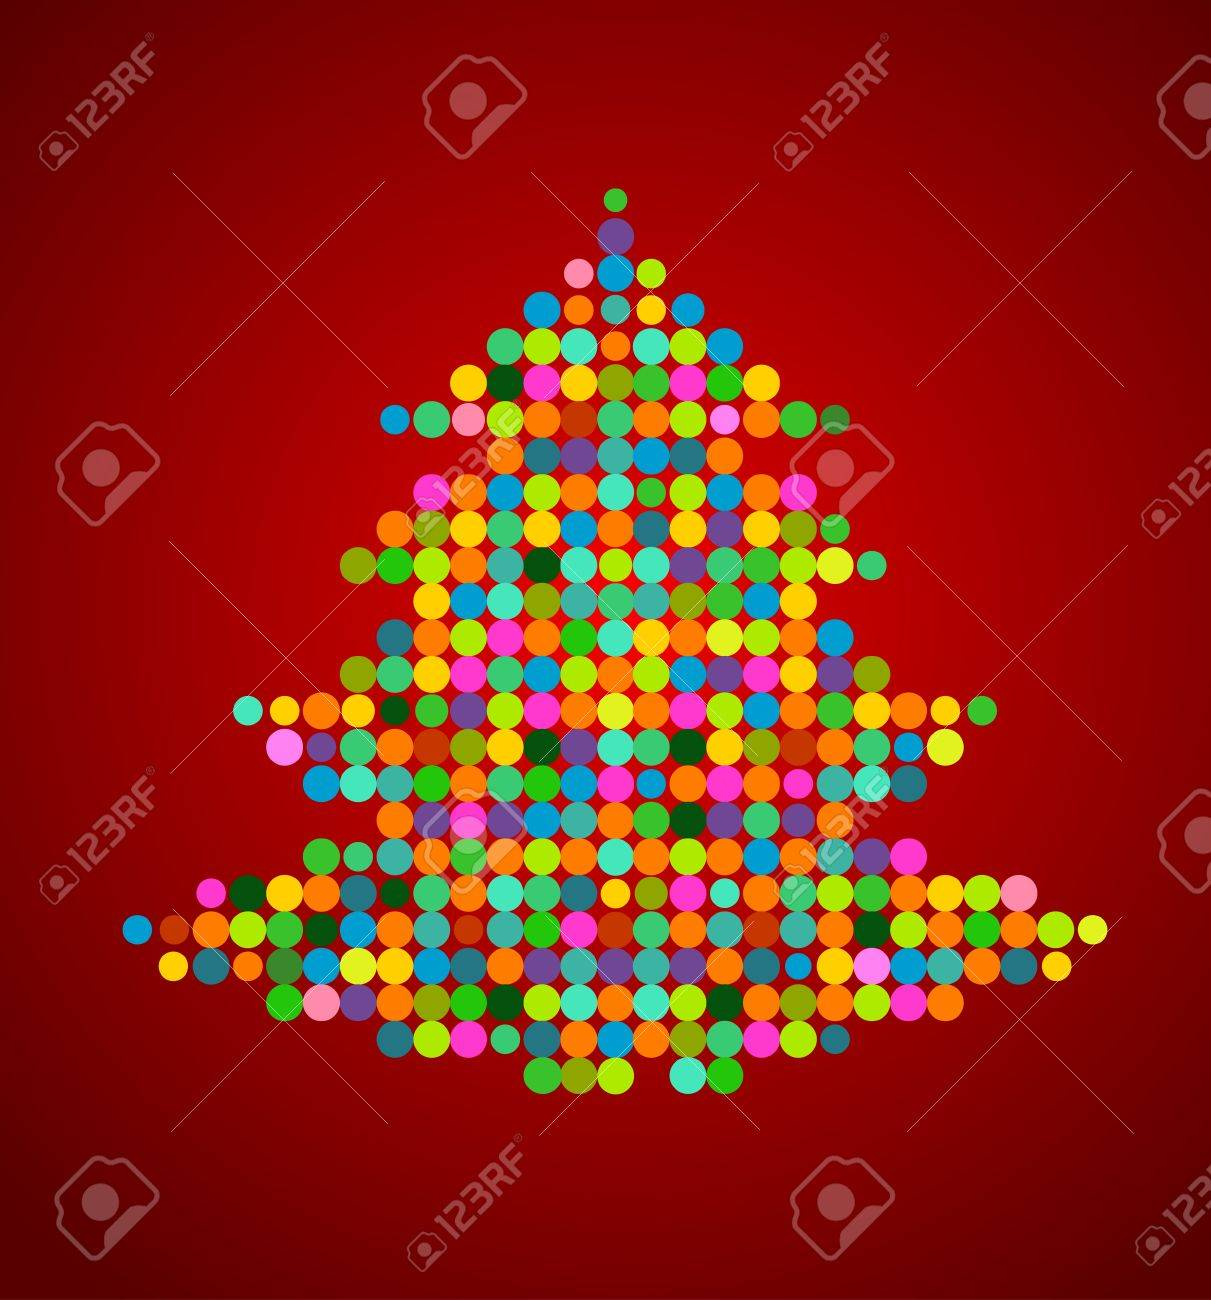 Xmas background images - Vector Xmas Background With Pixel Christmas Tree